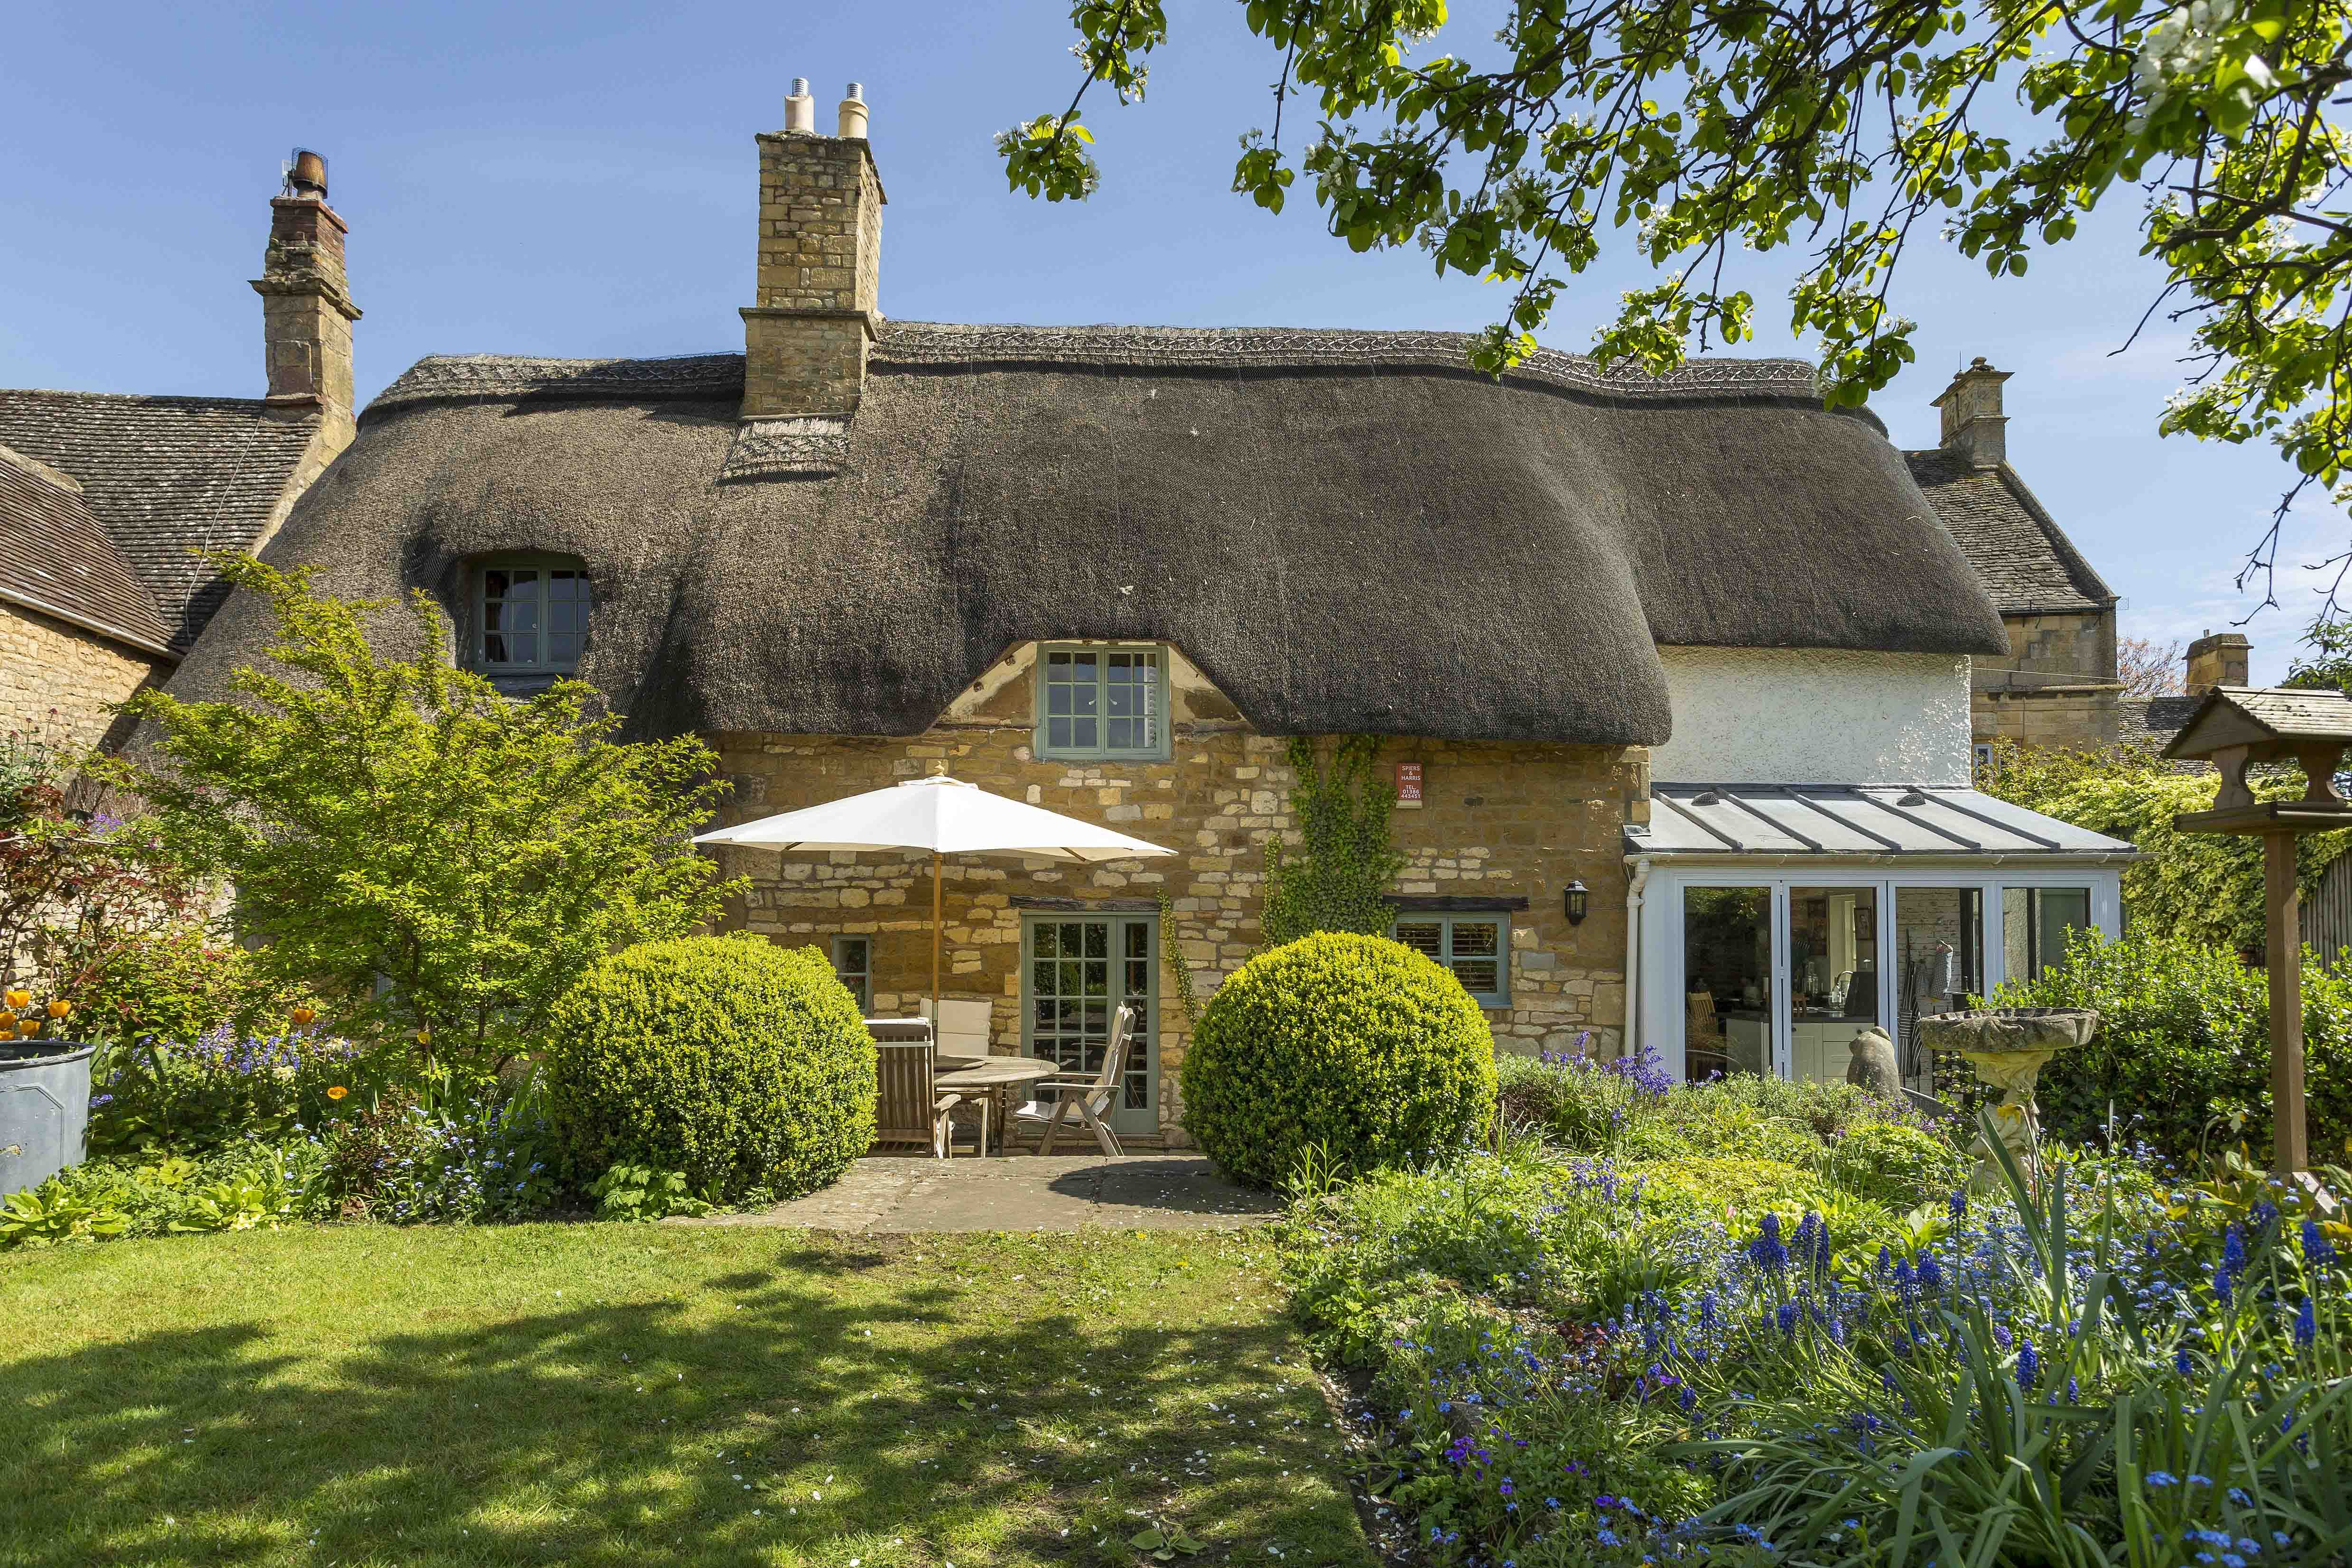 8 Dreamy Cotswold Cottages for Sale - Properties in the